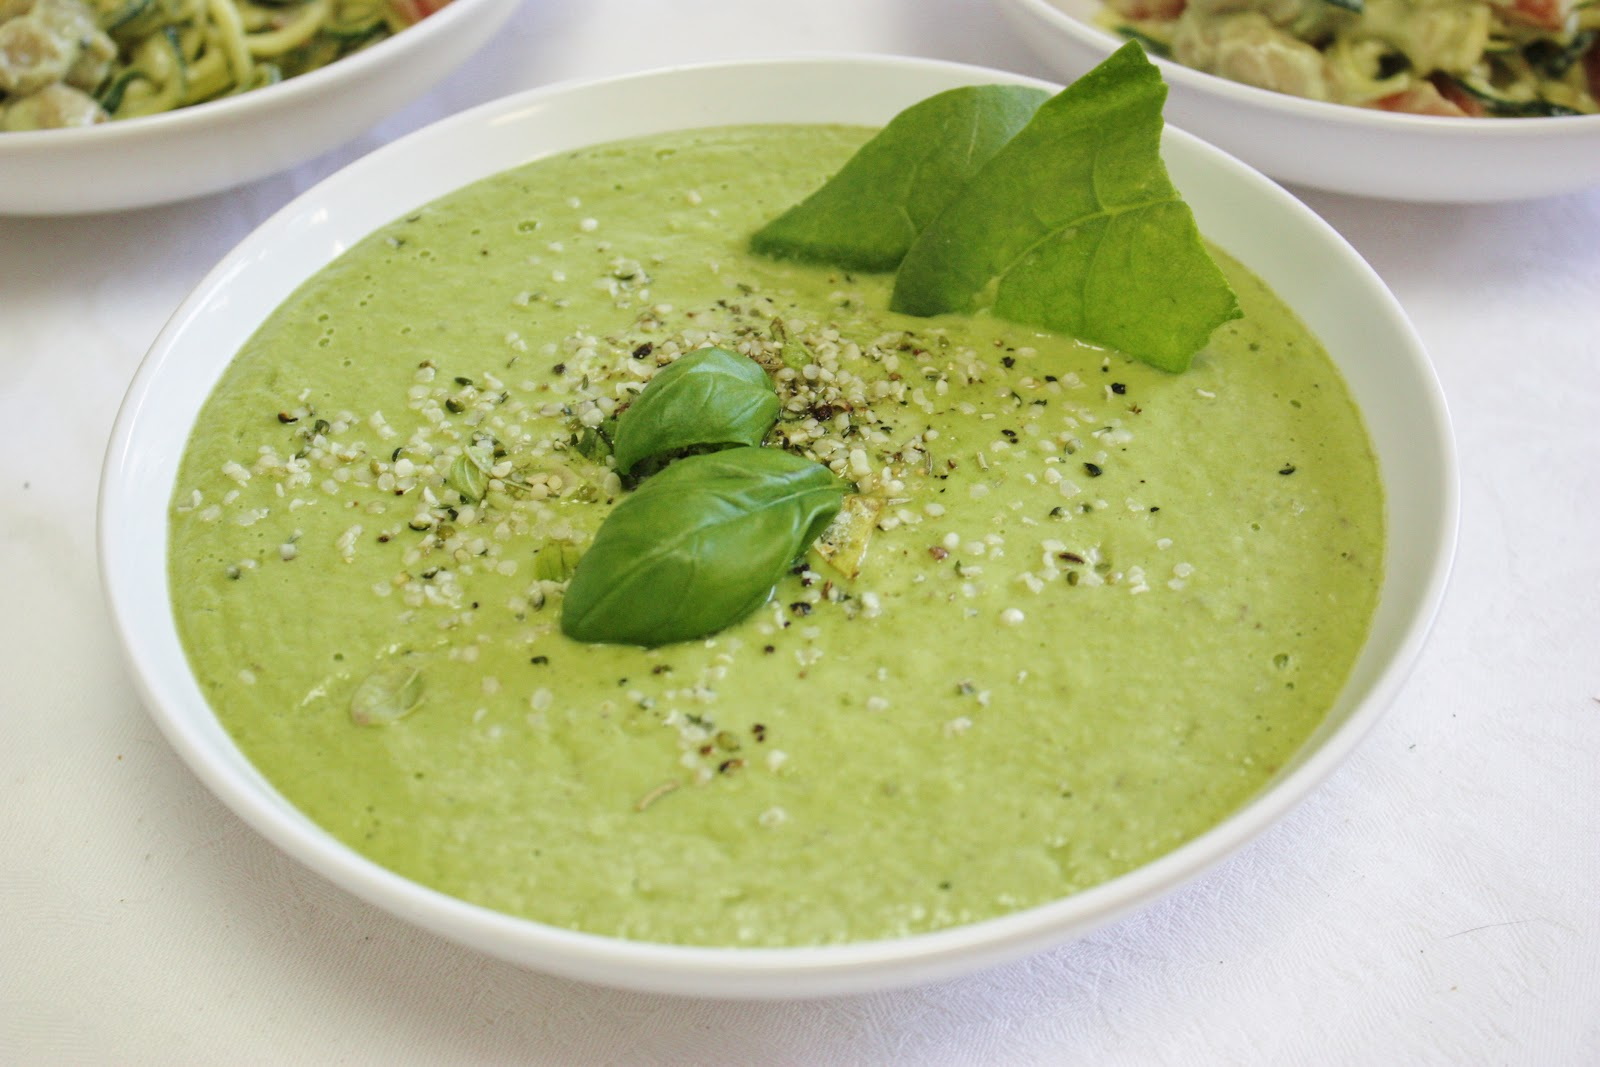 3. Spinach and Avocado Soup